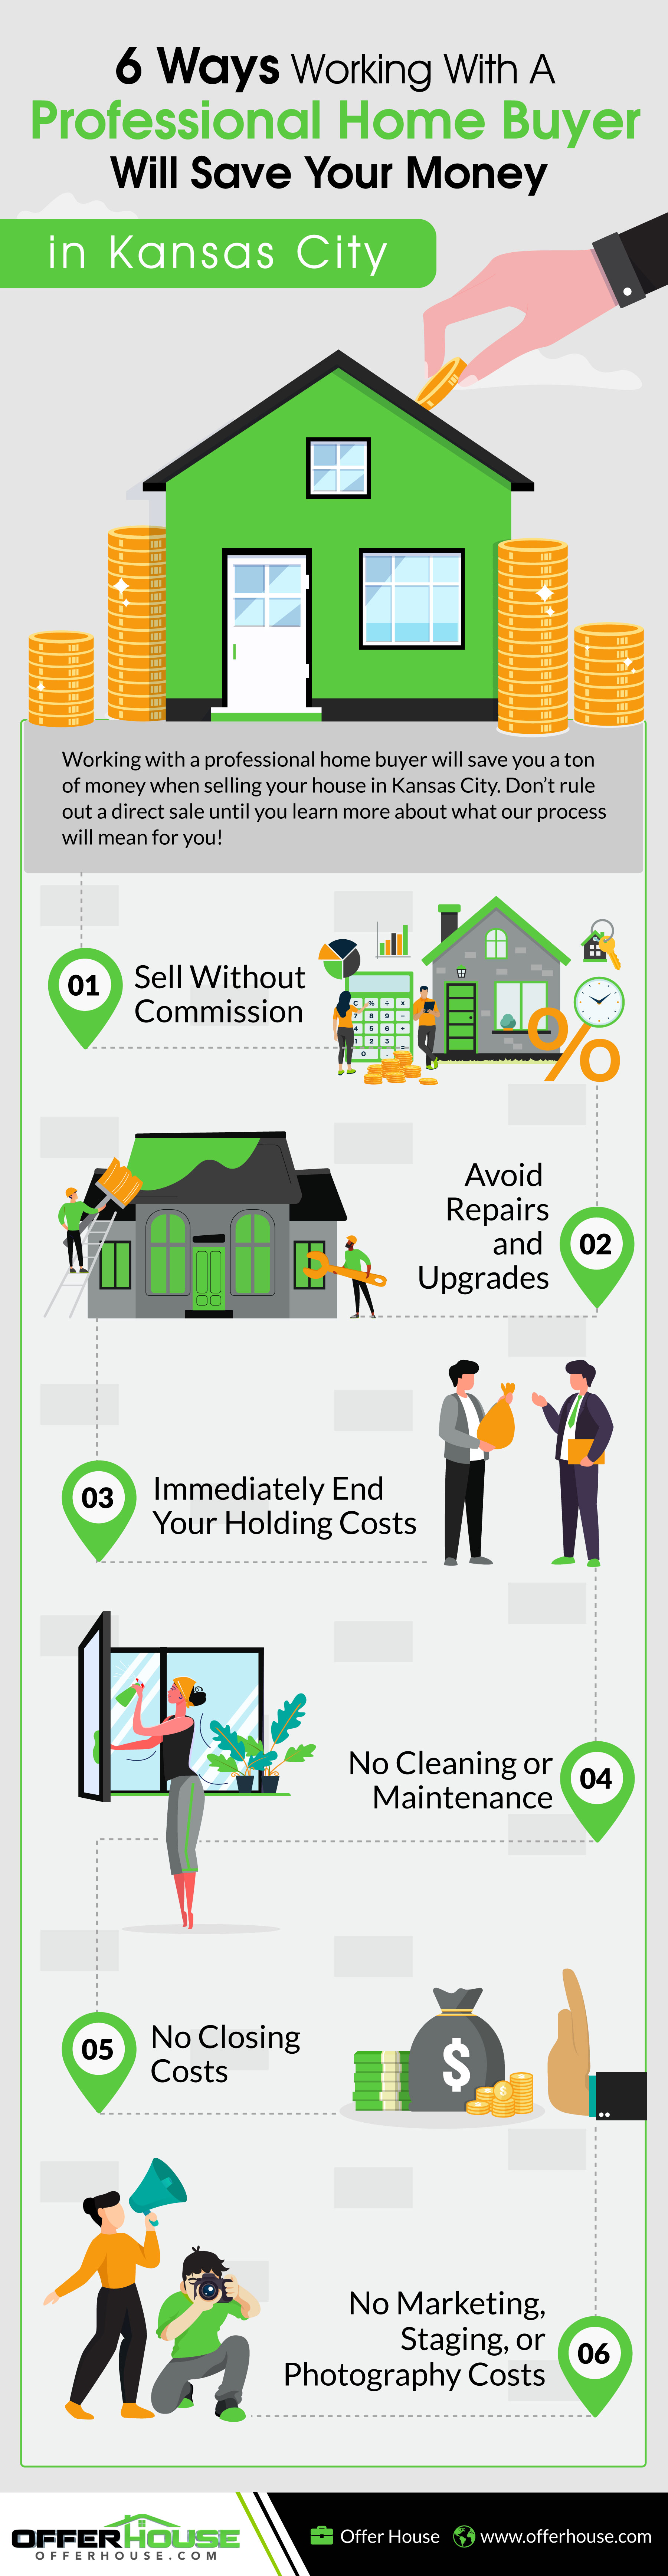 Ways Working With A Professional Home Buyer Will Save Your Money infographic